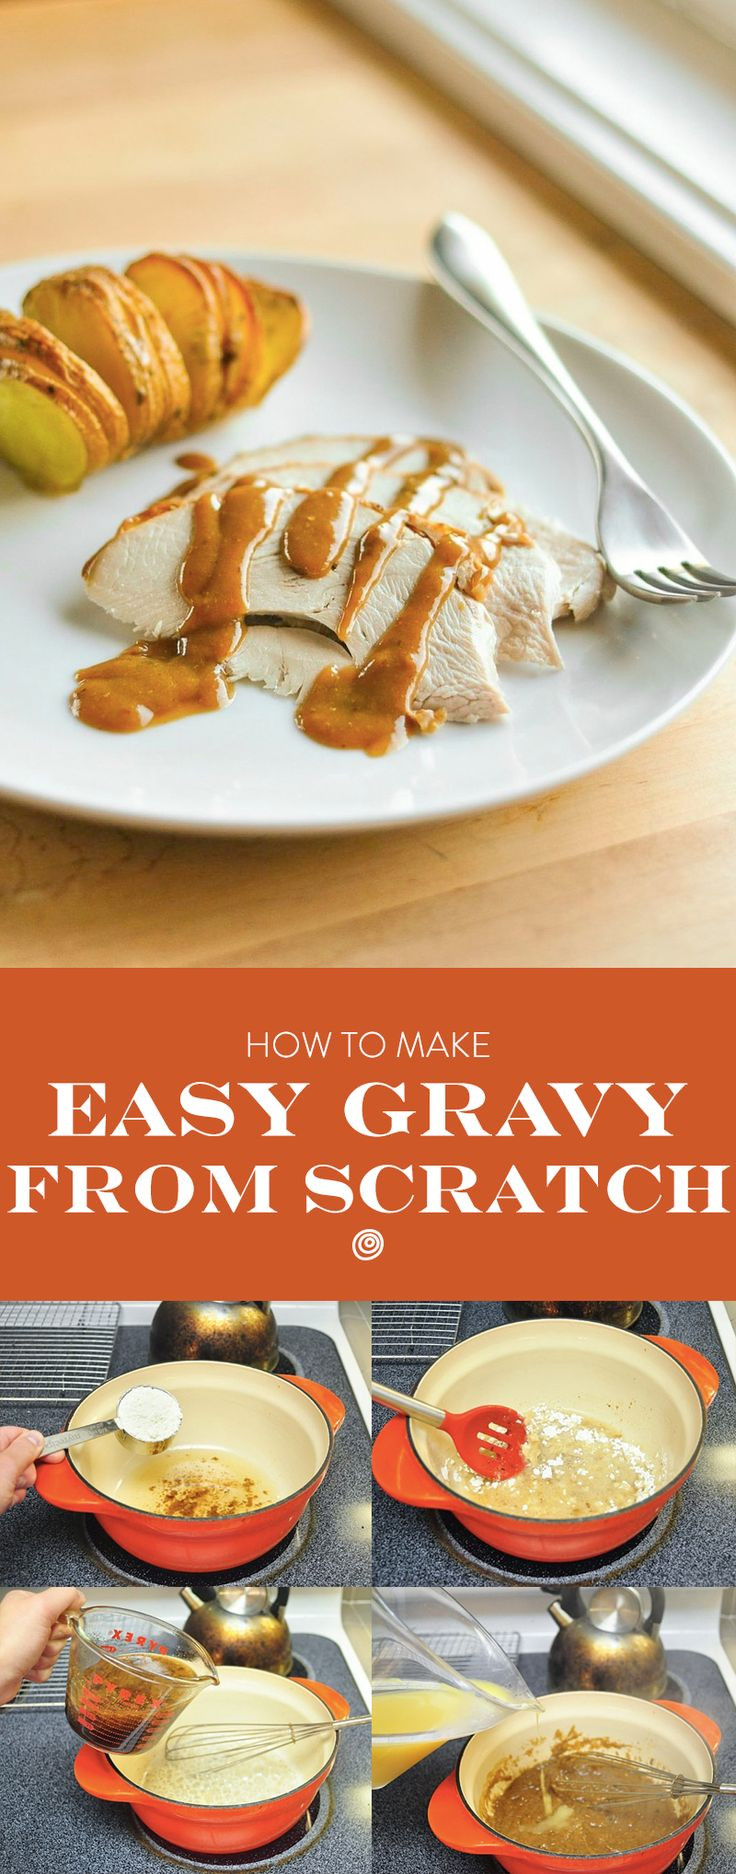 How To Make Turkey Gravy  How To Make an Easy Turkey Gravy Recipe